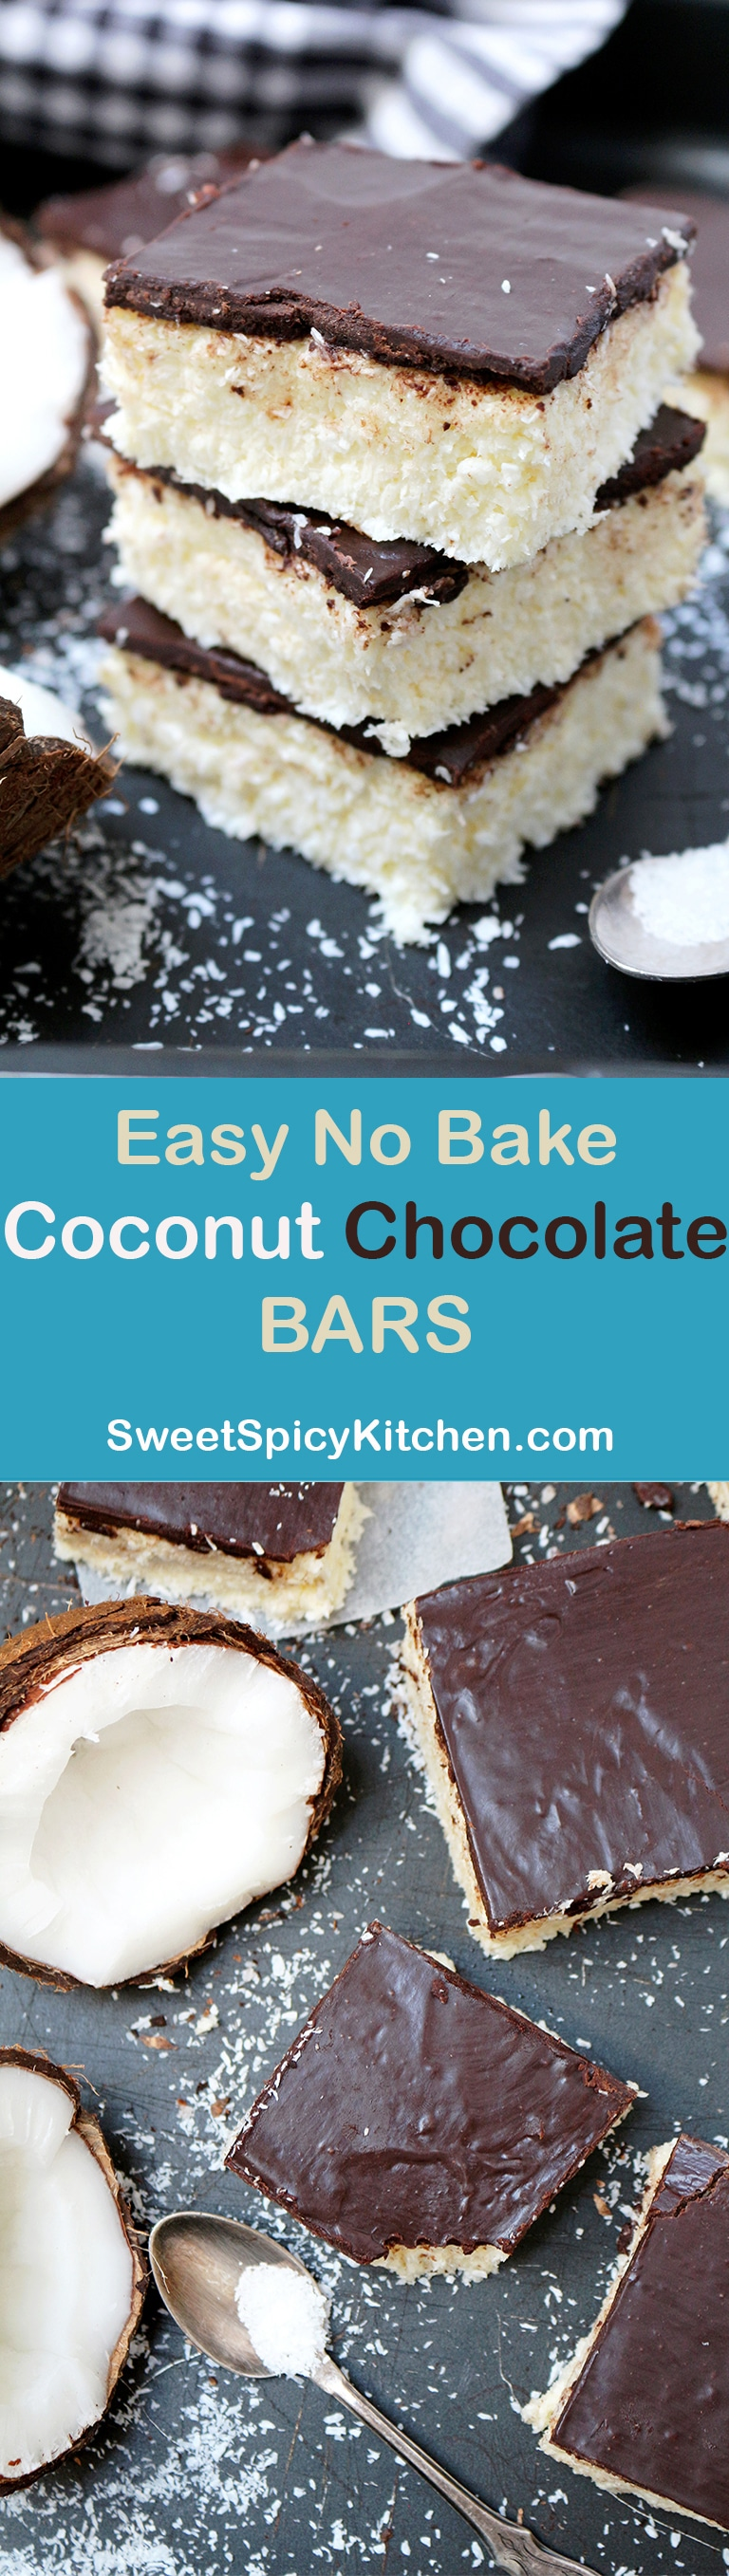 Easy No Bake Coconut Chocolate Bars super quick and delicious bars you will love. Light and refreshing, melt in your mouth dessert perfect for hot summer days